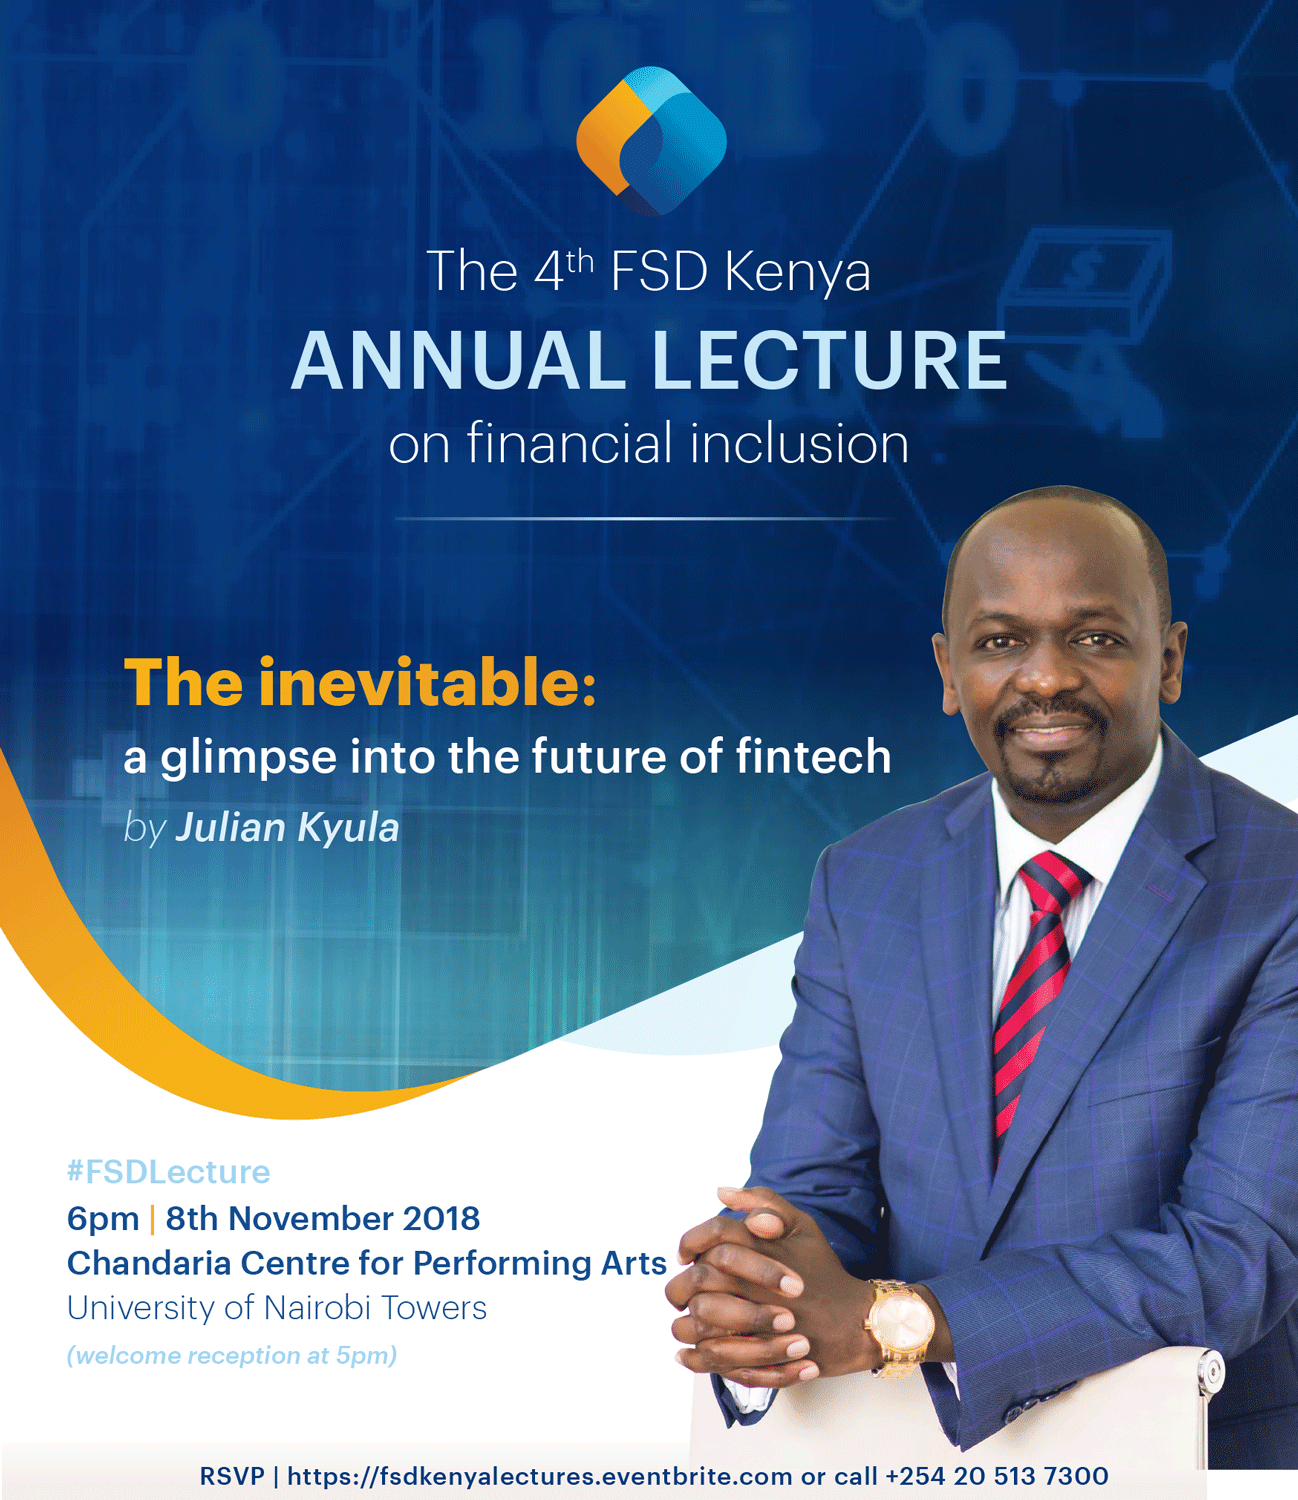 4th FSD Kenya annual lecture invite